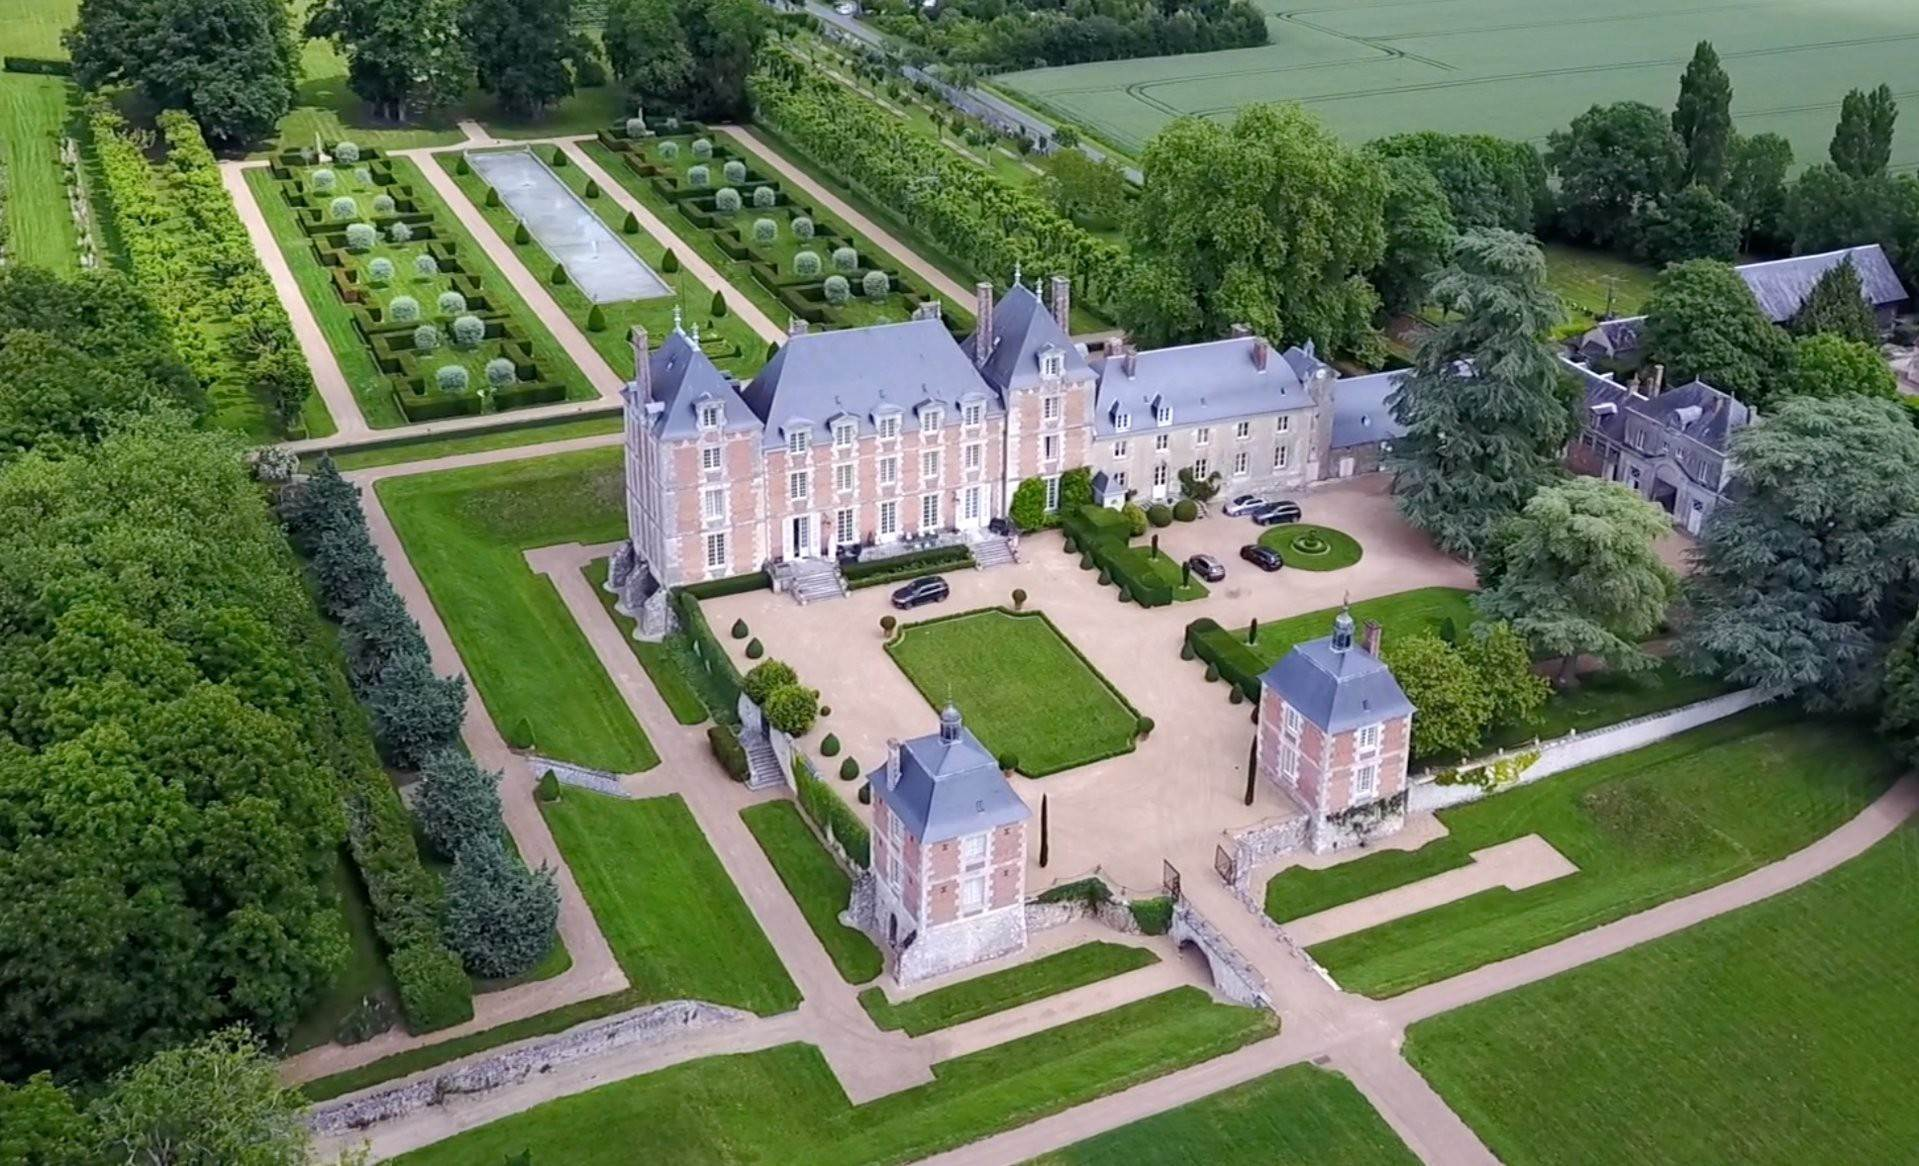 2. Ville / Villette per Vendita alle ore An exceptional listed Louis XIII style chateau set in 40 enclosed hectares with formal French gardens. An architectural gem Blois, Loir et Cher,41000 Francia